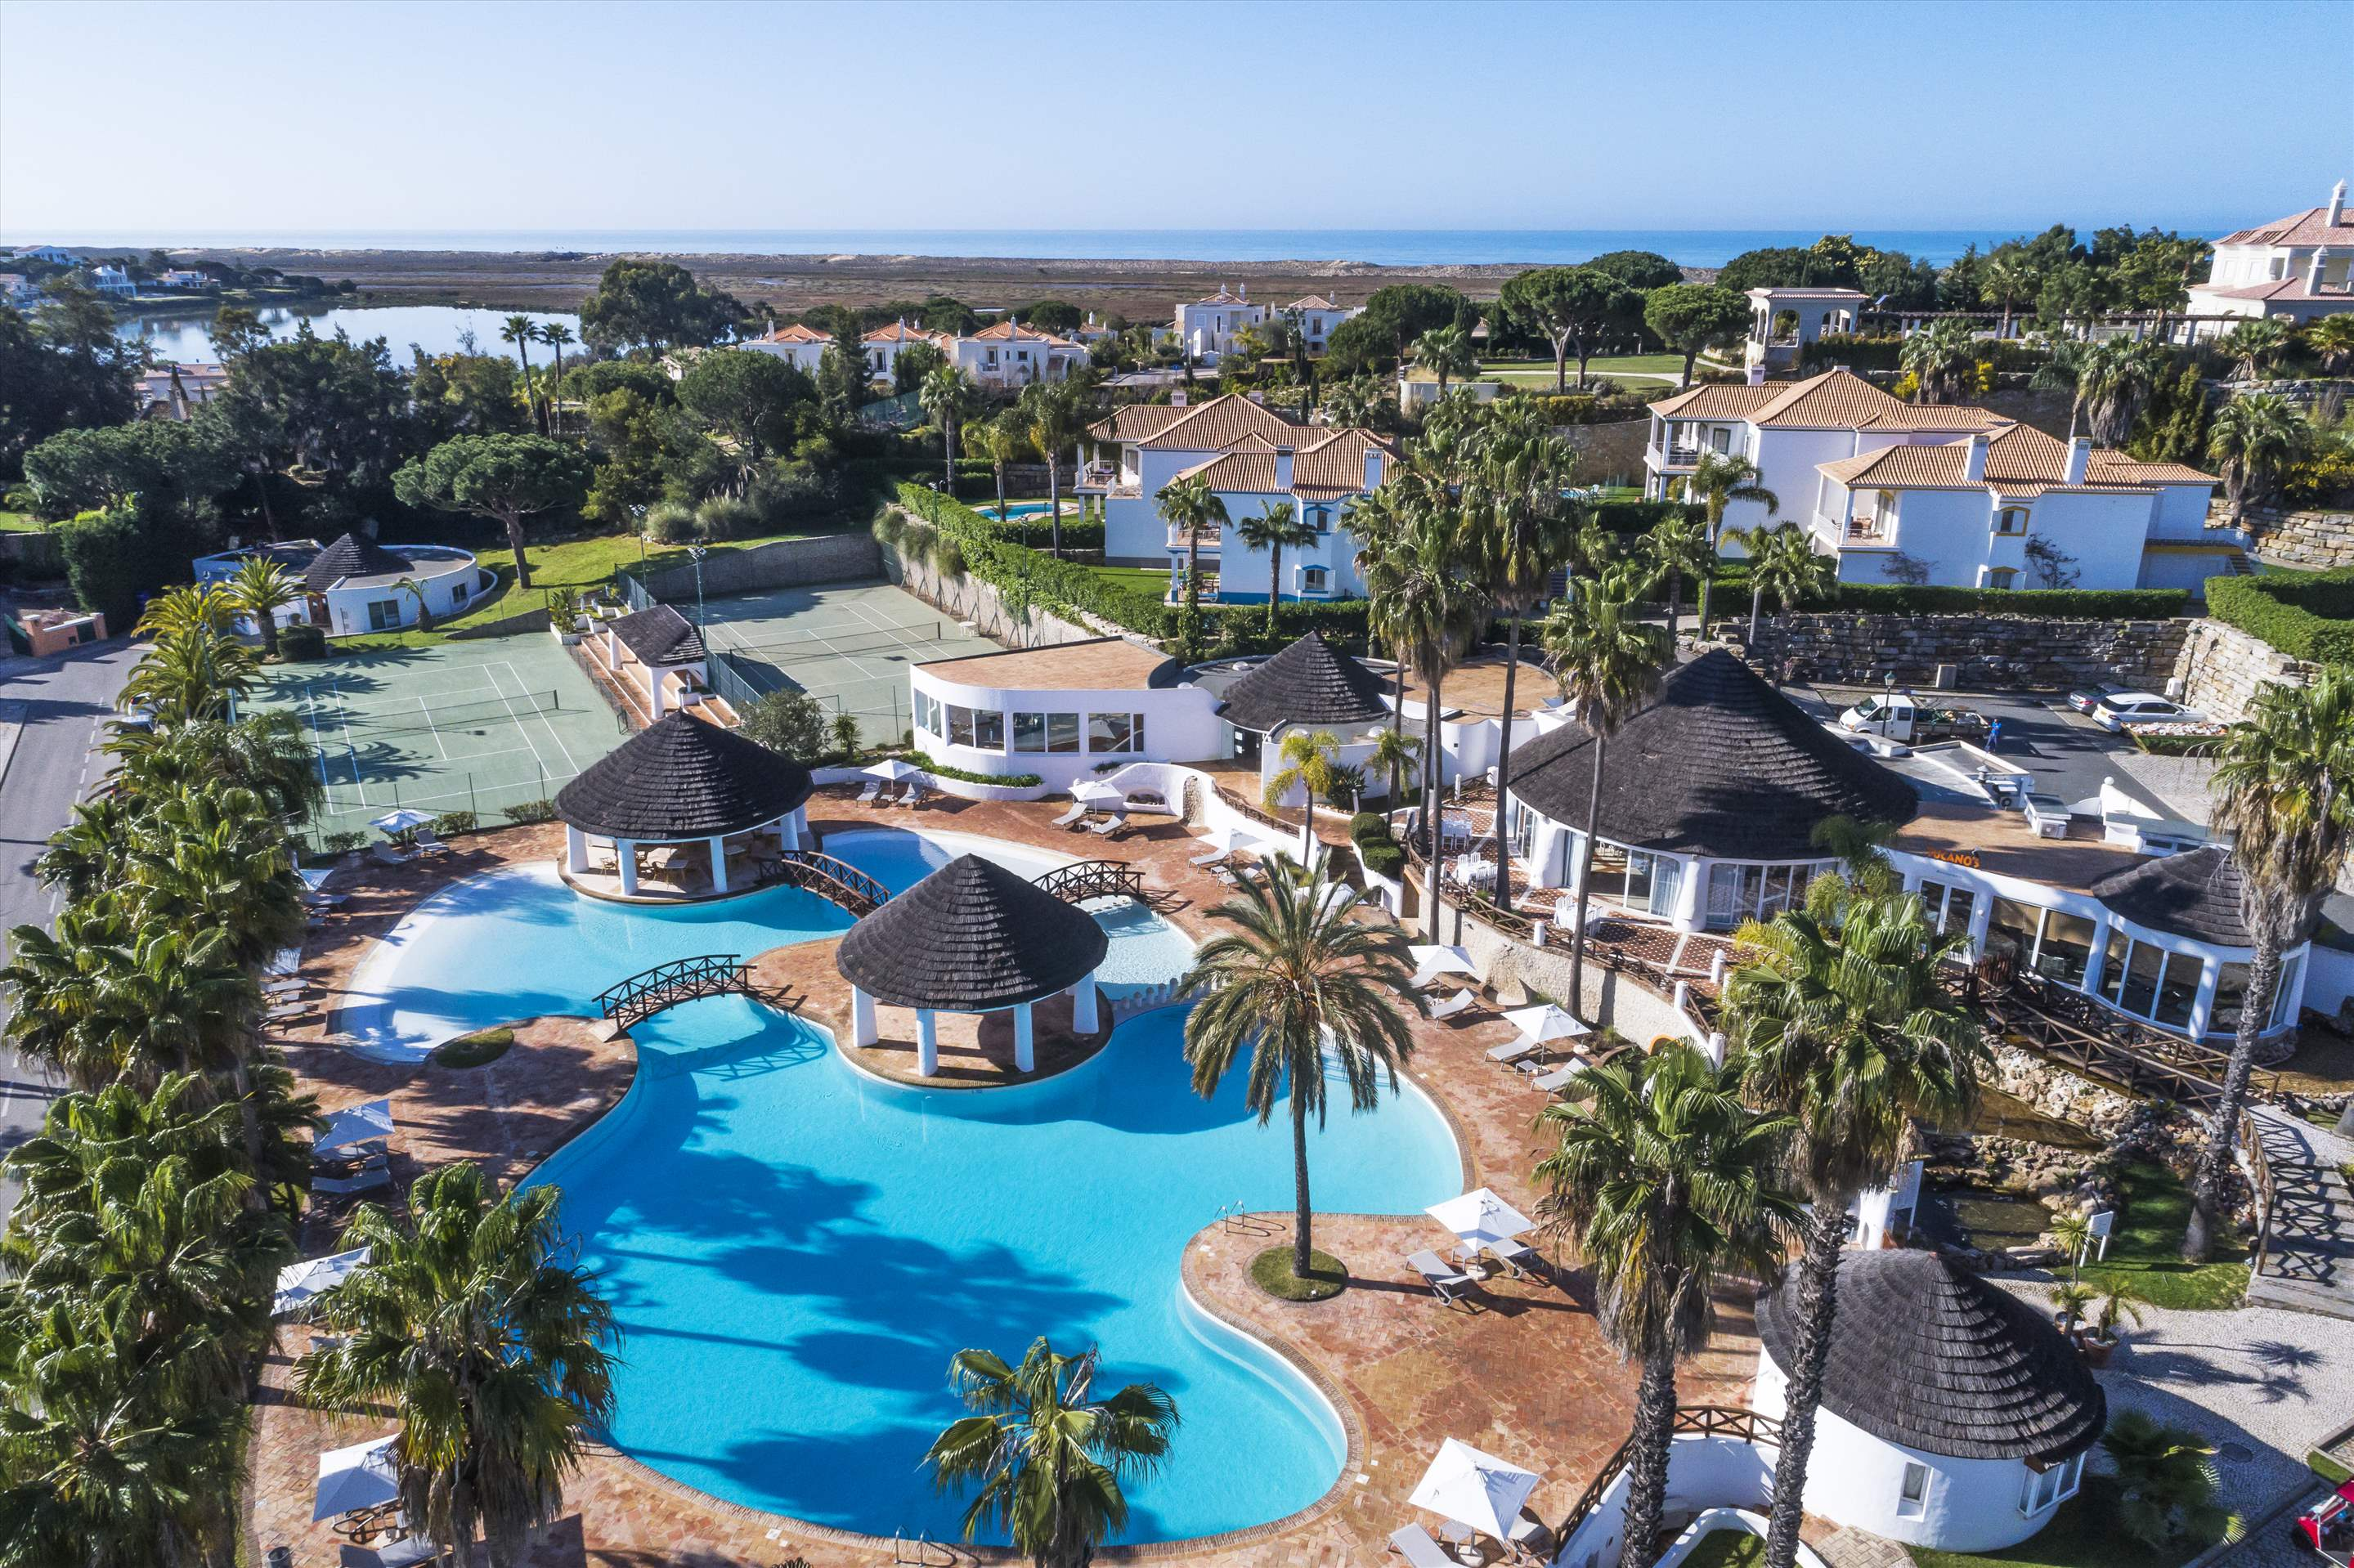 Encosta do Lago 2 Bedroom Apt, Private Pool, 2 bedroom apartment in Encosta do Lago Resort, Algarve Photo #28